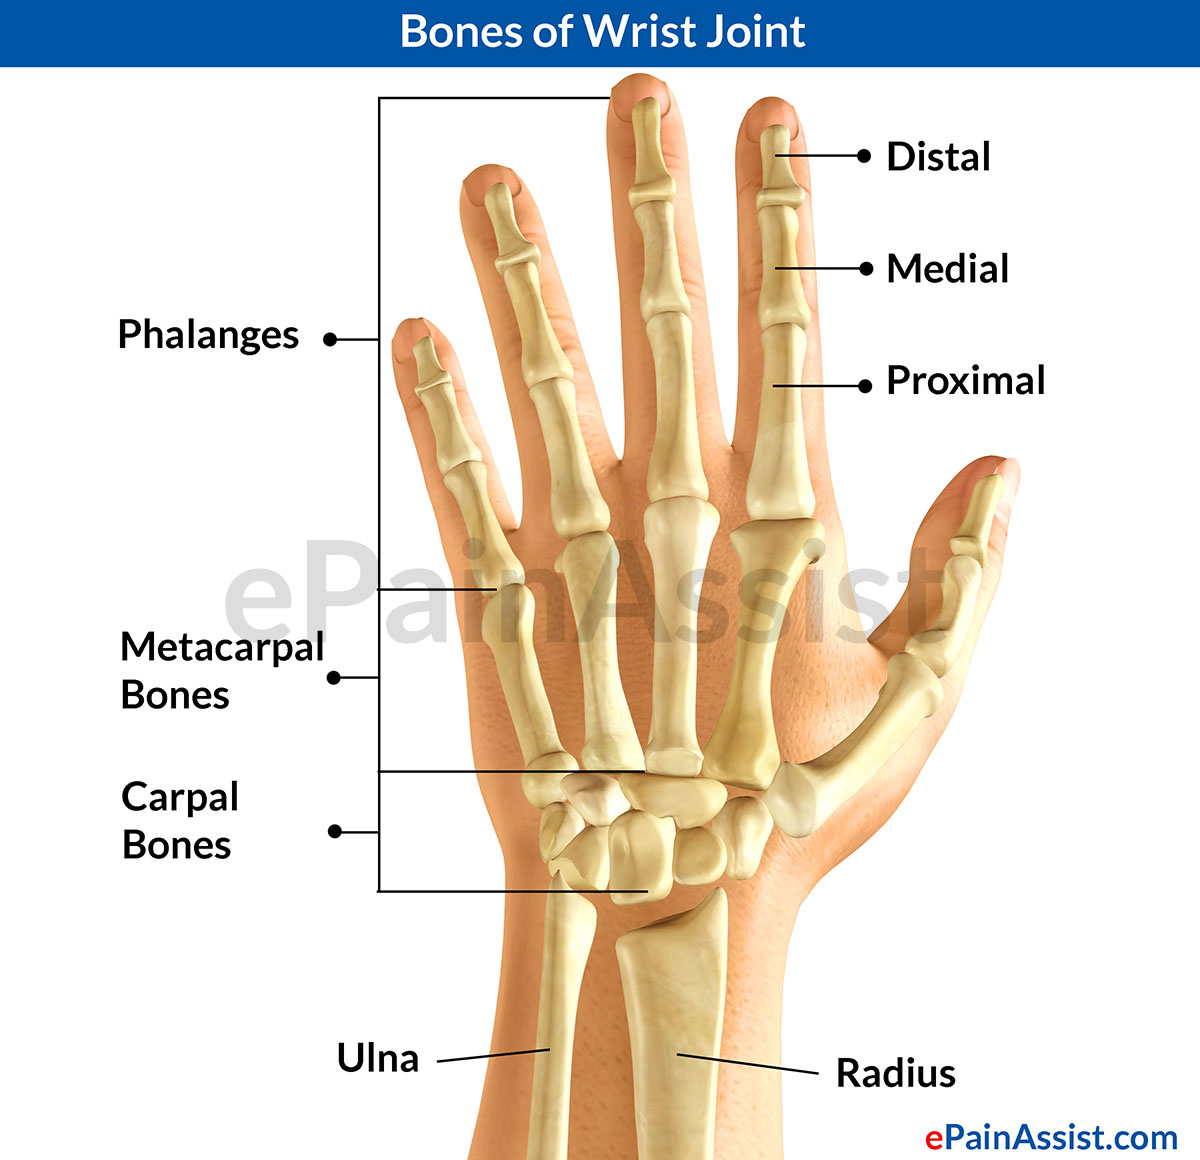 wrist joint fracture|types|causes|symptoms|treatment-medications, Sphenoid